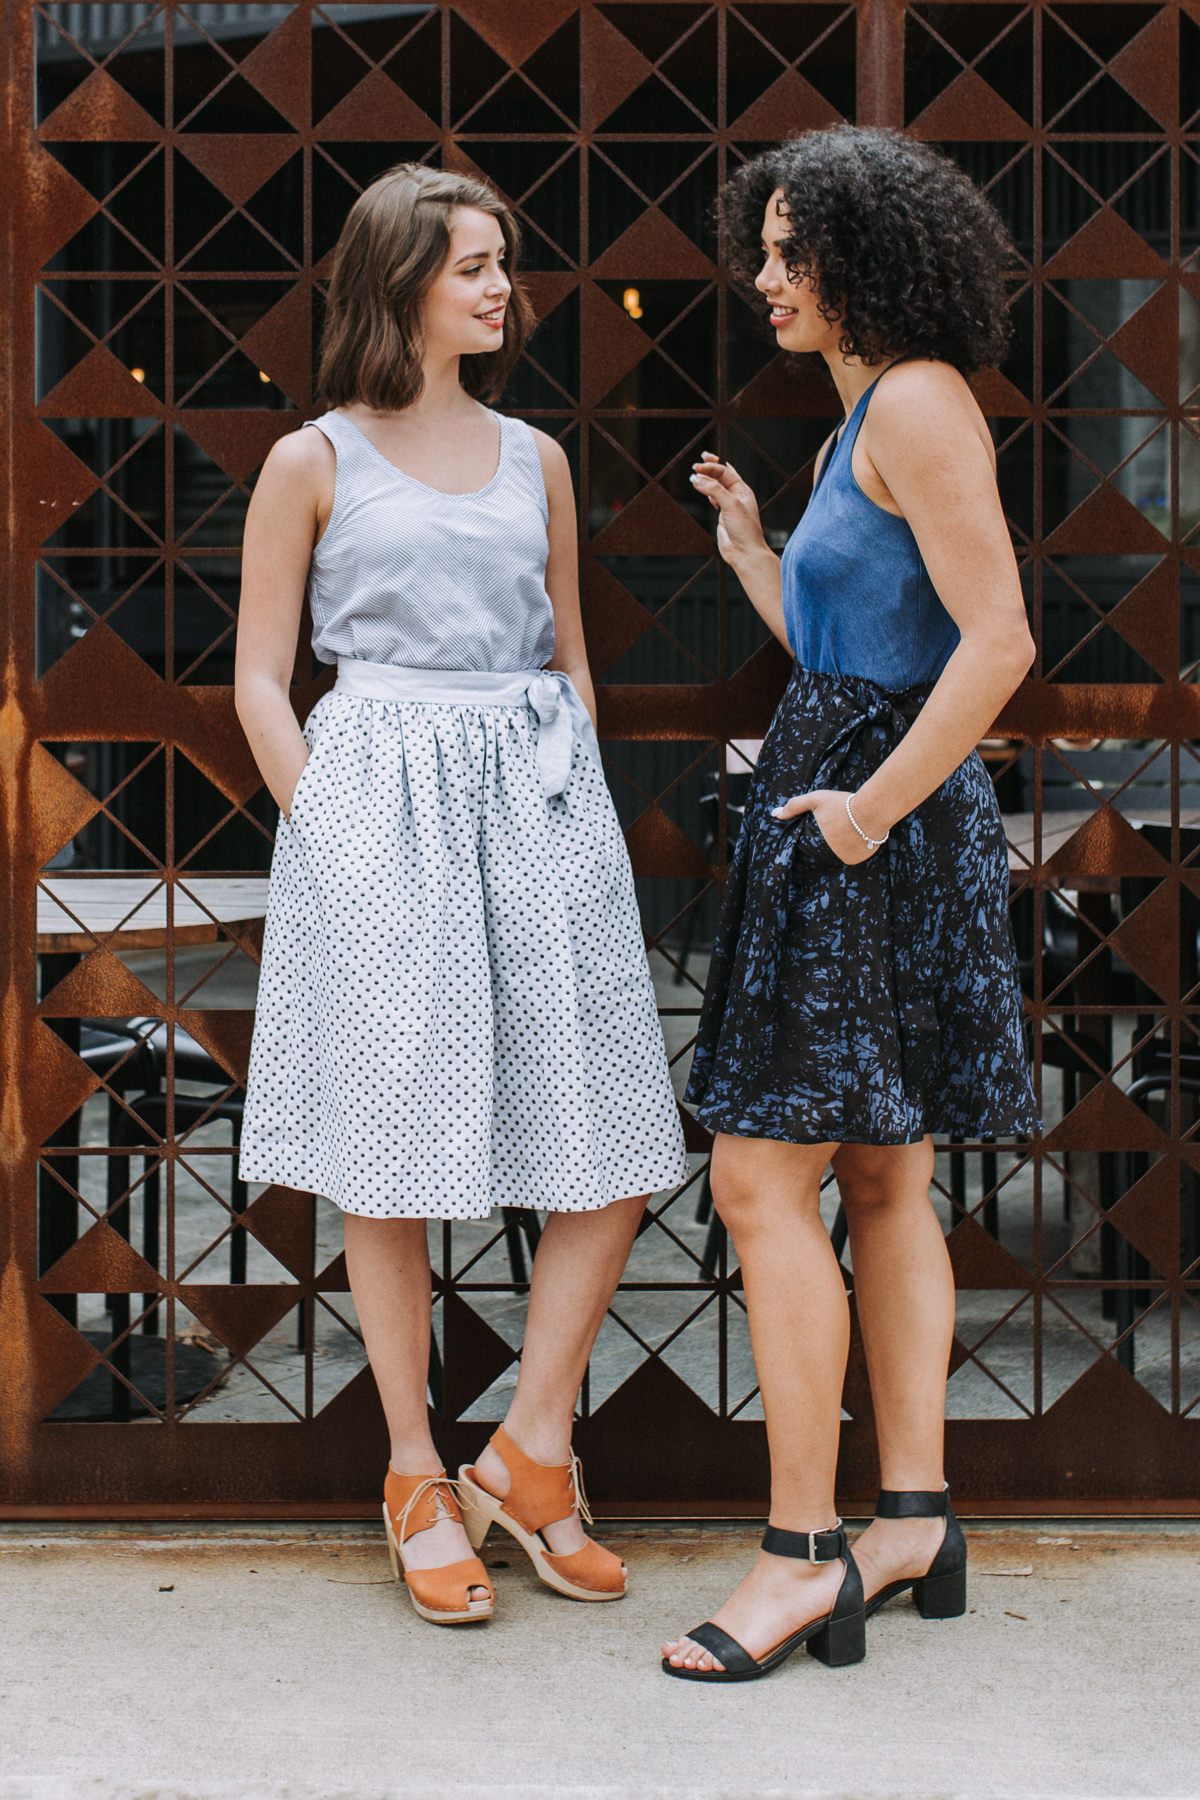 The new Megan Nielsen wardrobe pattern collection // The Dawn rigid jeans pattern set, Jarrah sweater set, Floreat dress & top, Wattle skirt pack